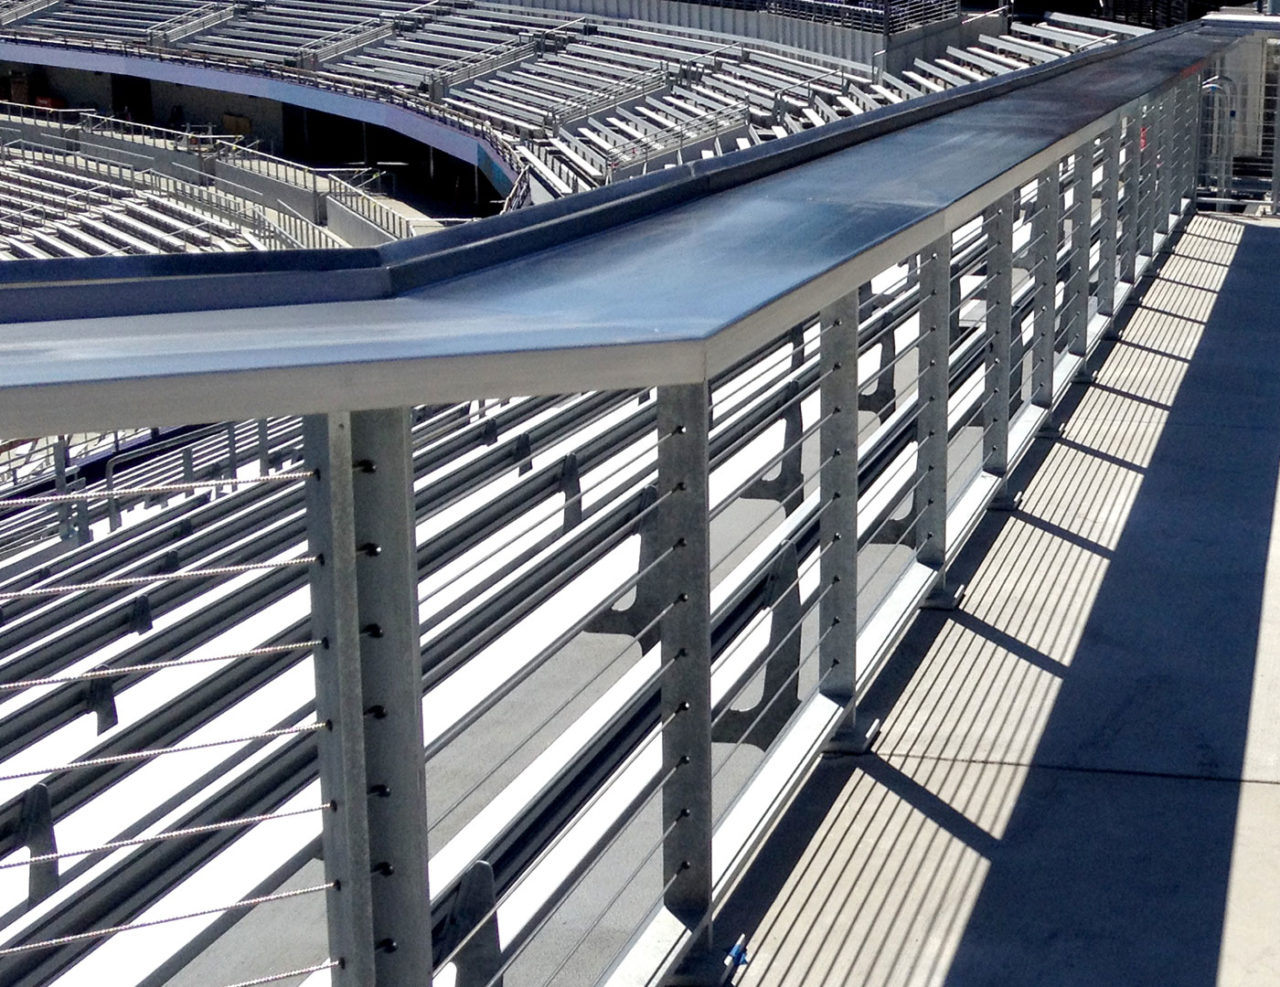 College football stadium with steel railing